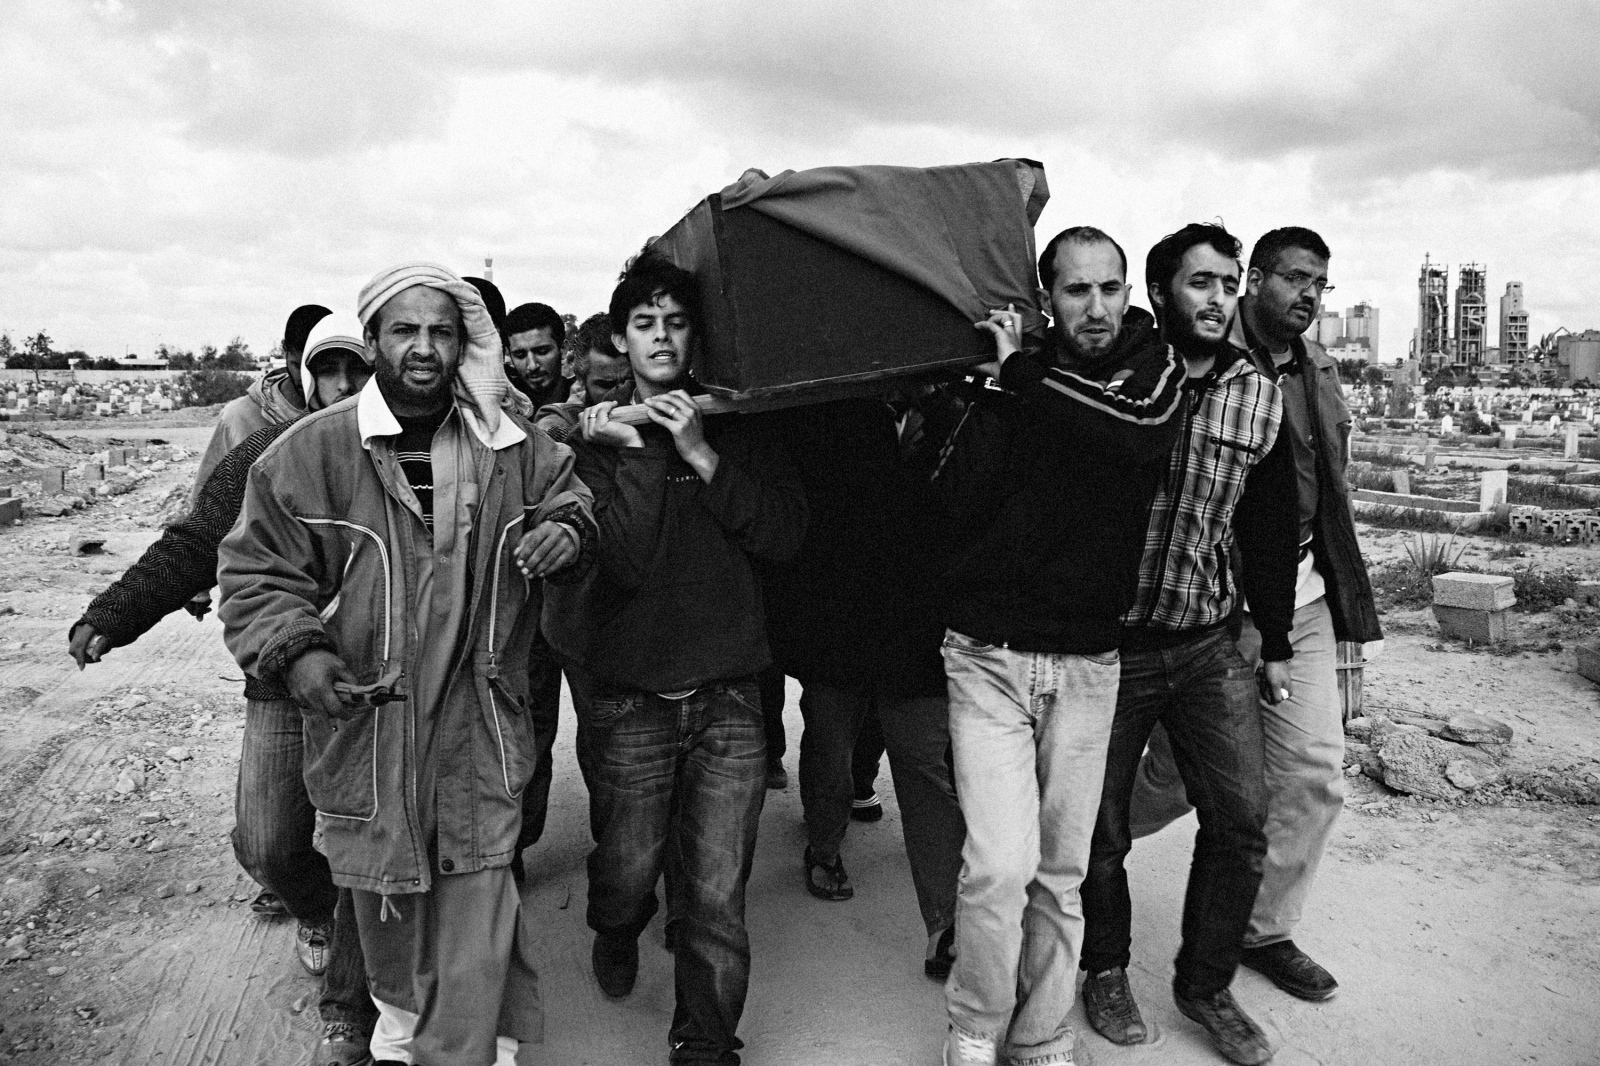 Family and friends of slain cartoonist and journalist Qais el-Haldy carry his coffin for burial in Benghazi, Eastern Libya on March 21, 2011.